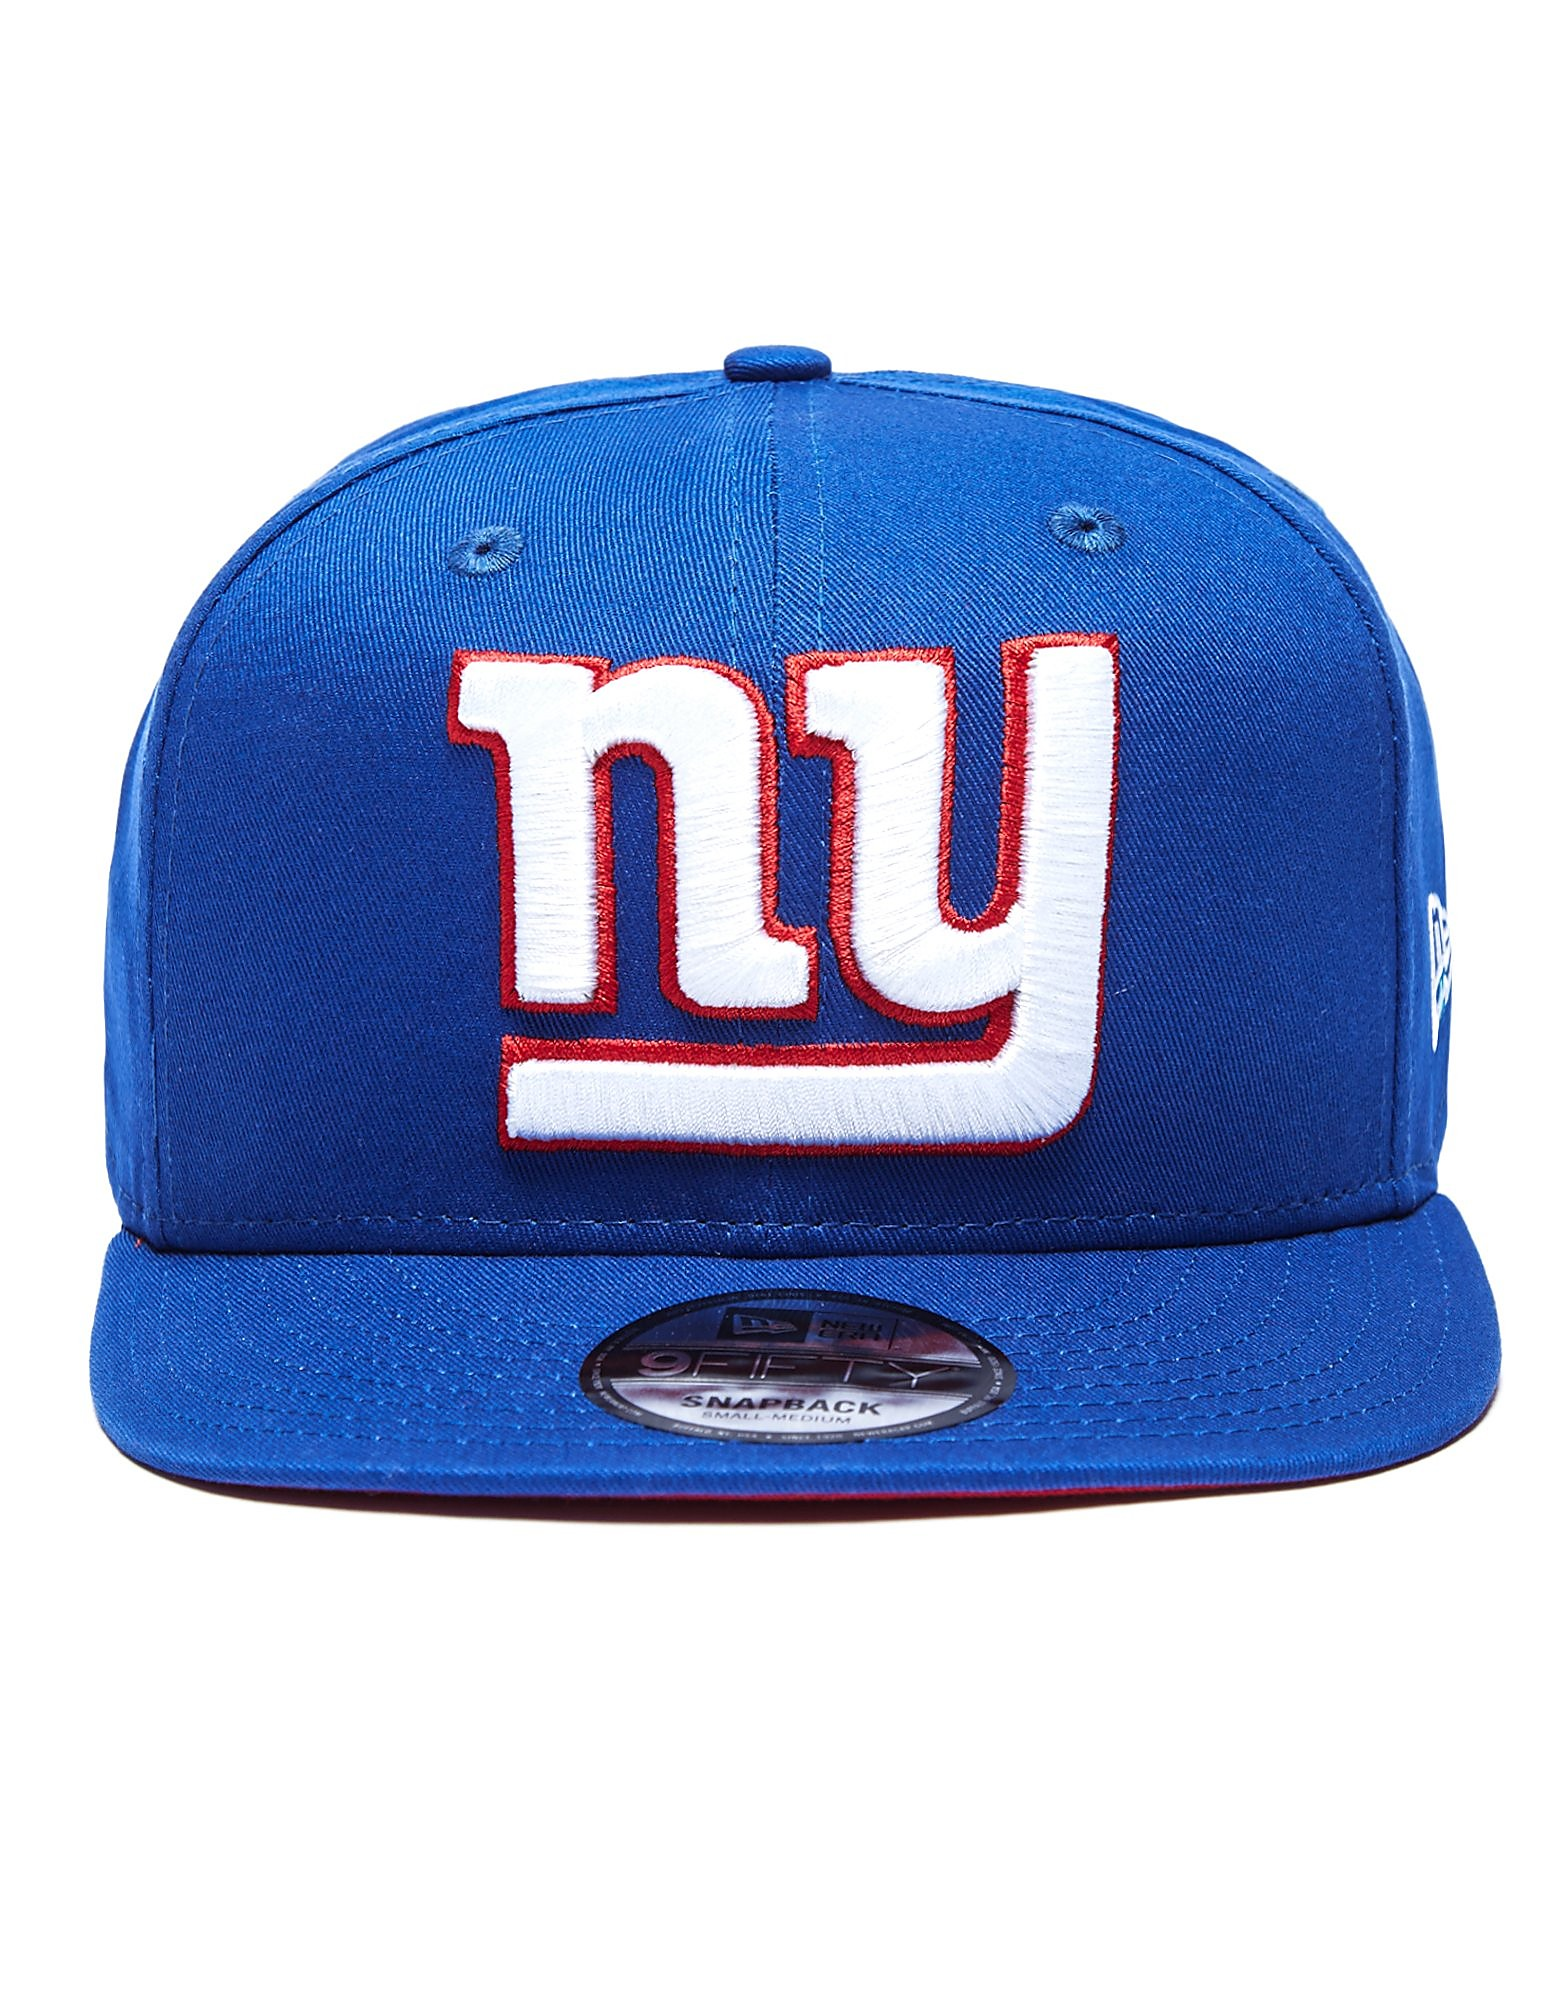 New Era NFL New York Giants 9FIFTY Baseballcap